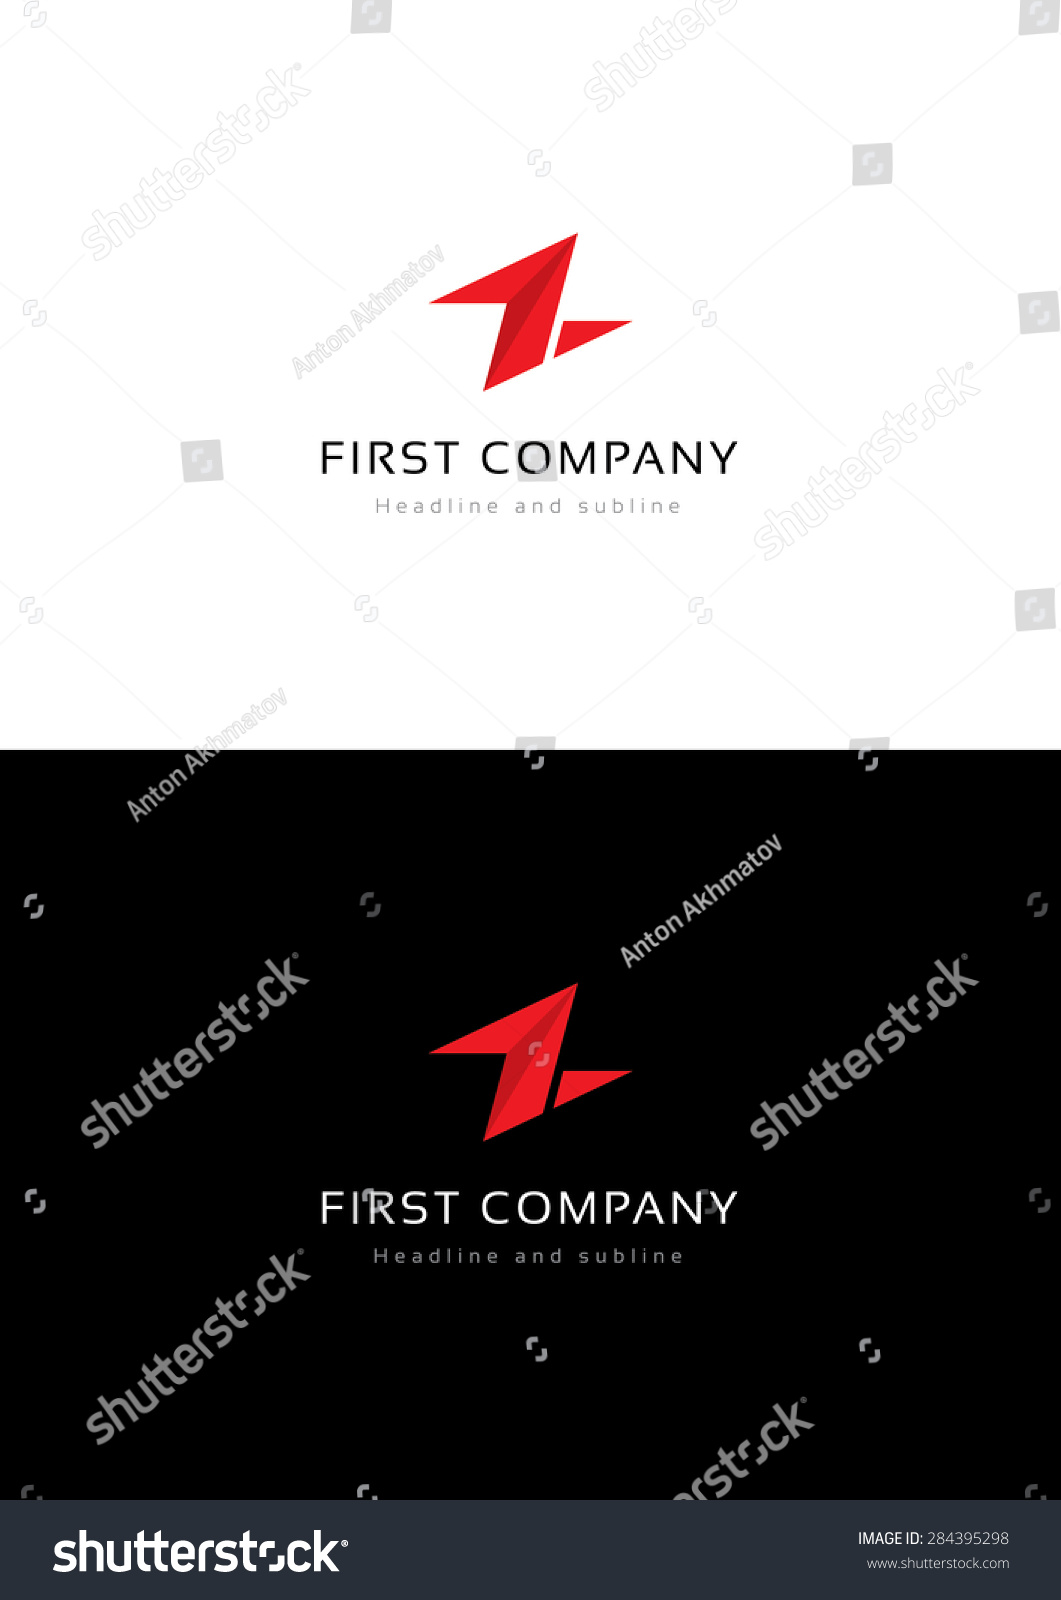 First lighting company logo template stock vector for Lights company